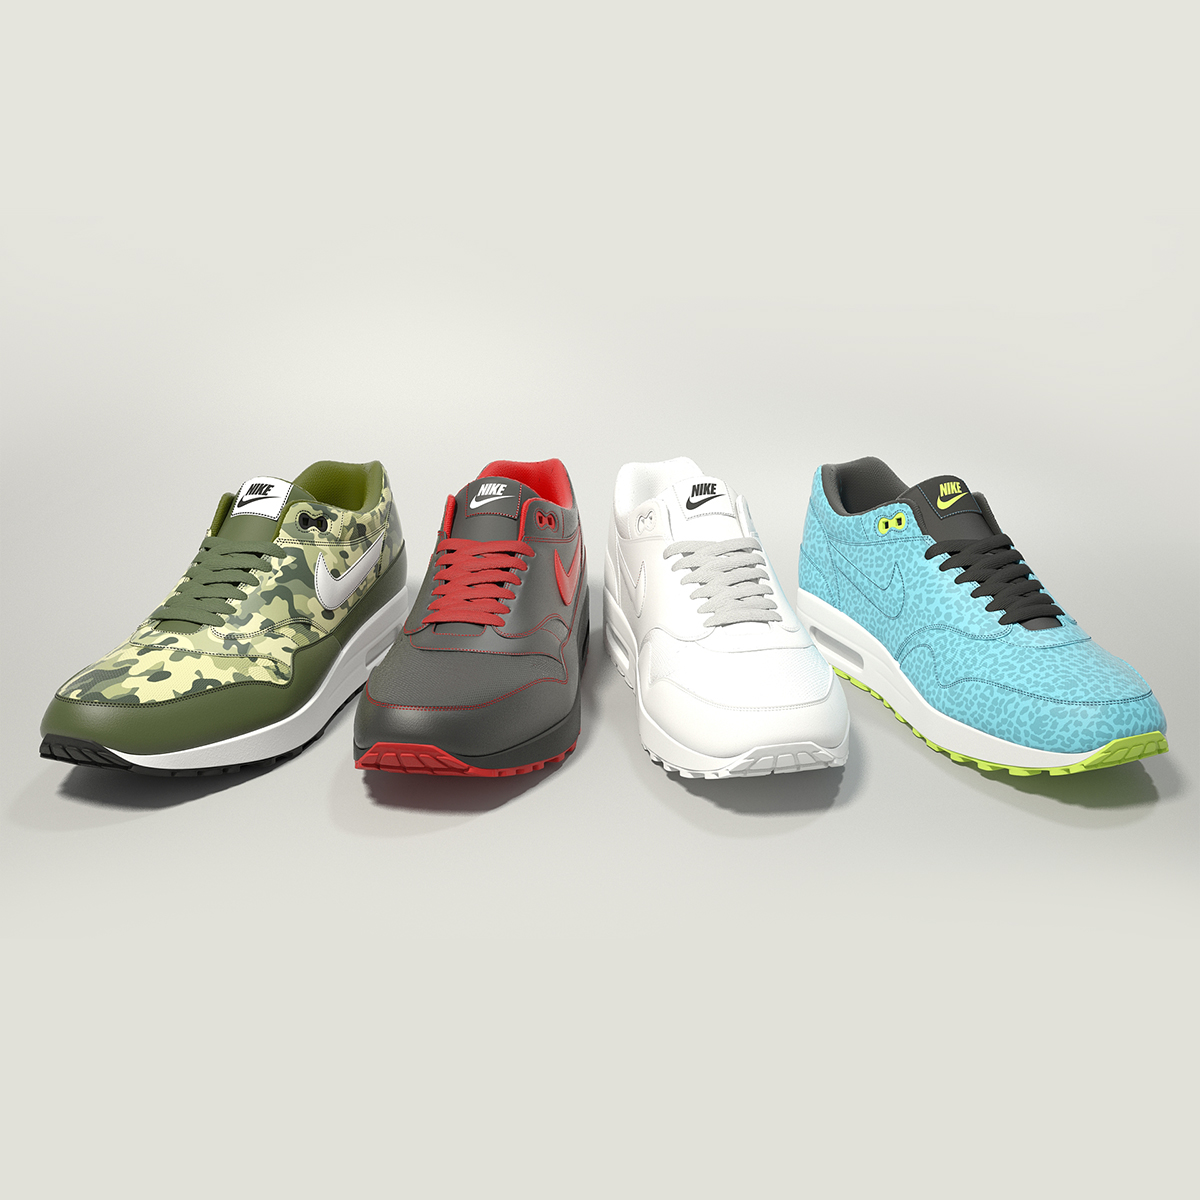 nike air max 1 3d model max obj fbx jpeg 265396